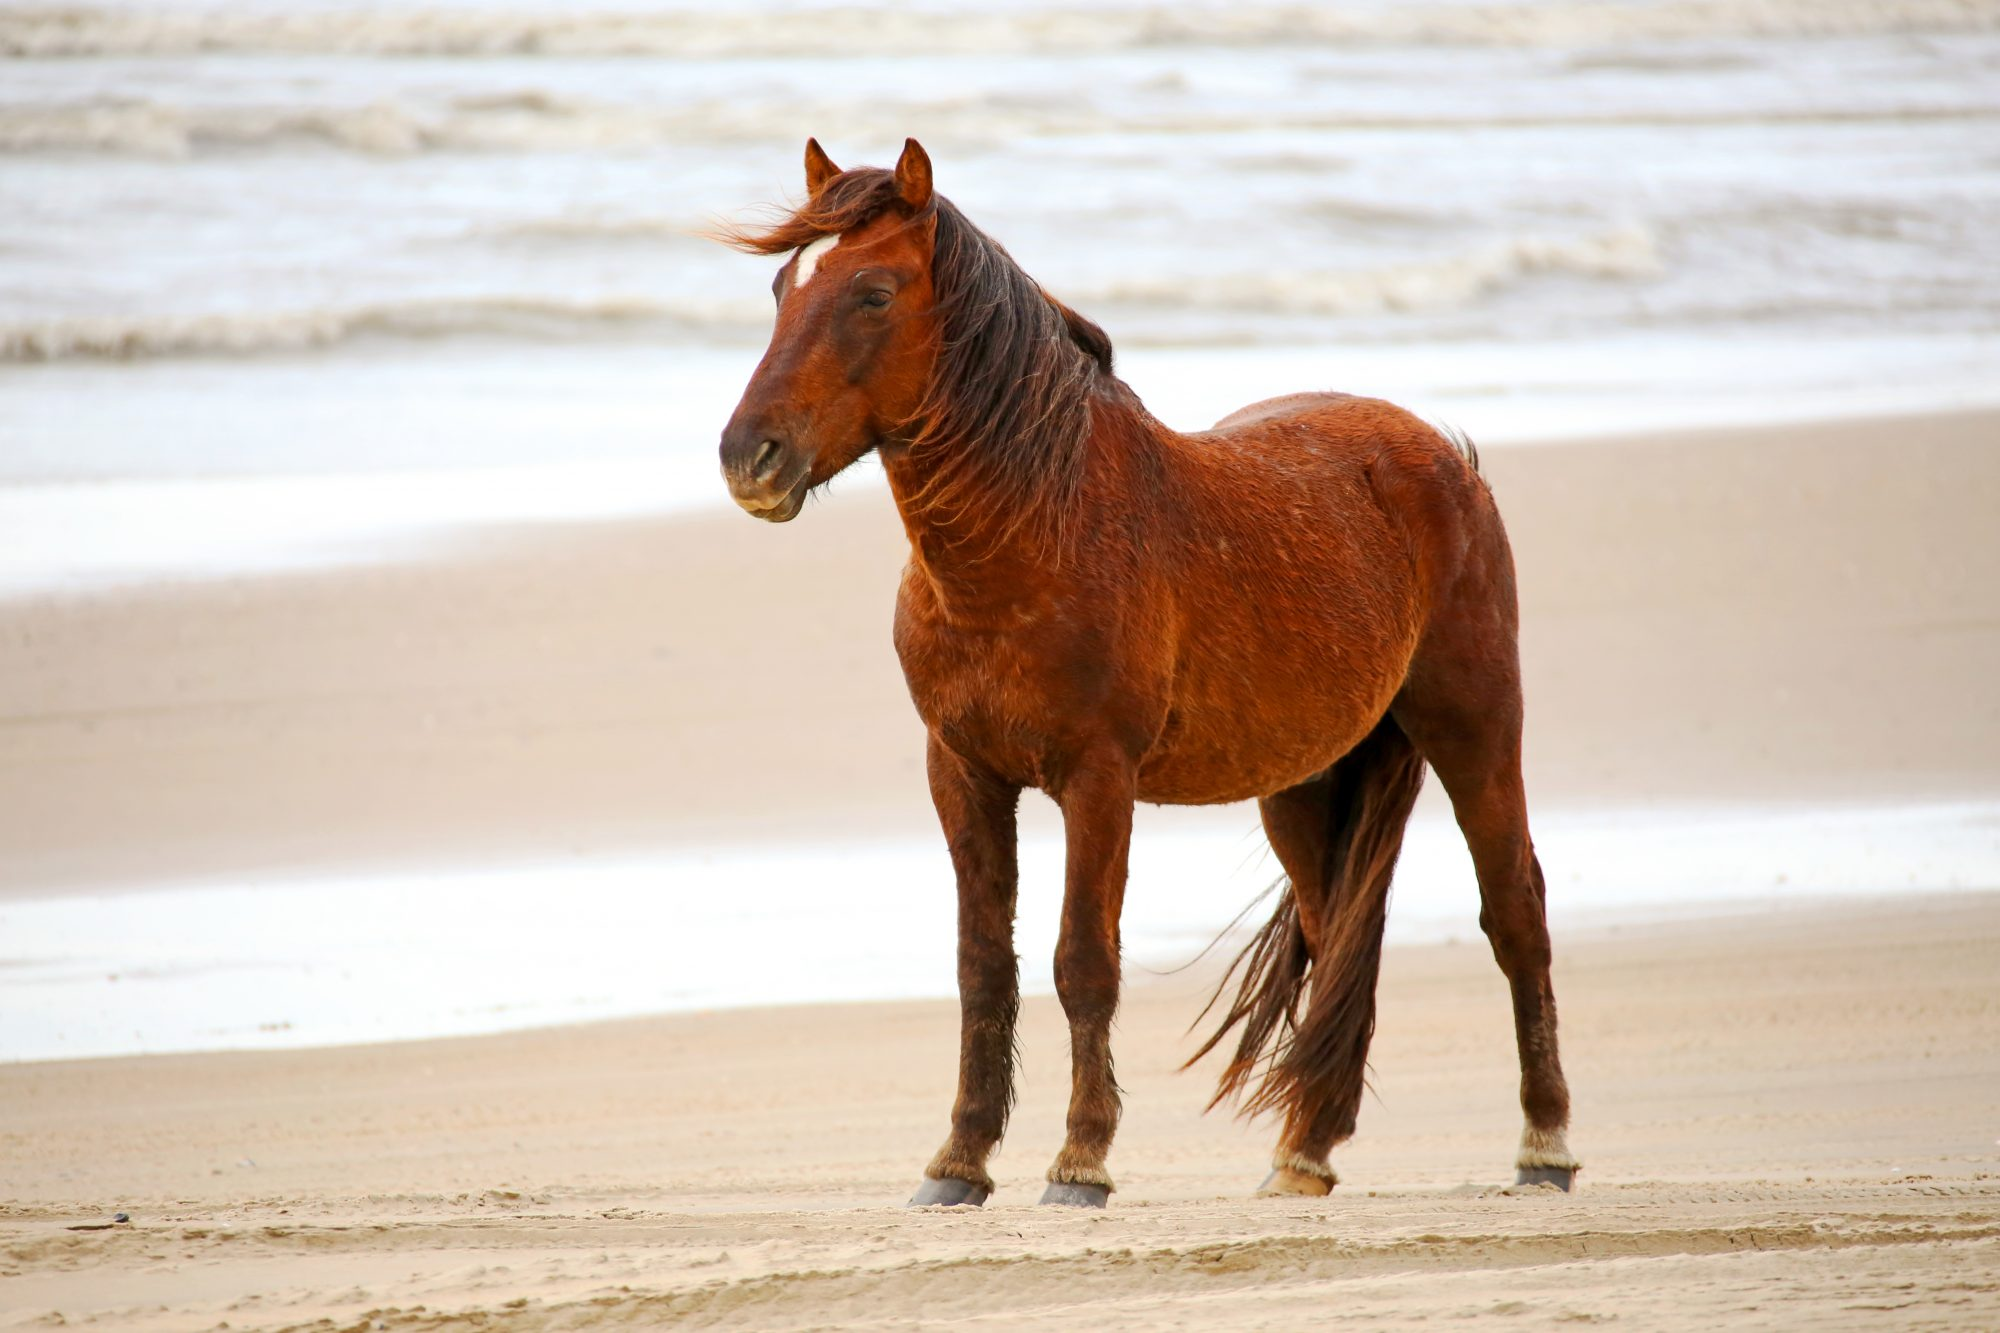 Single Wild Horse on Beach in Corolla North Carolina